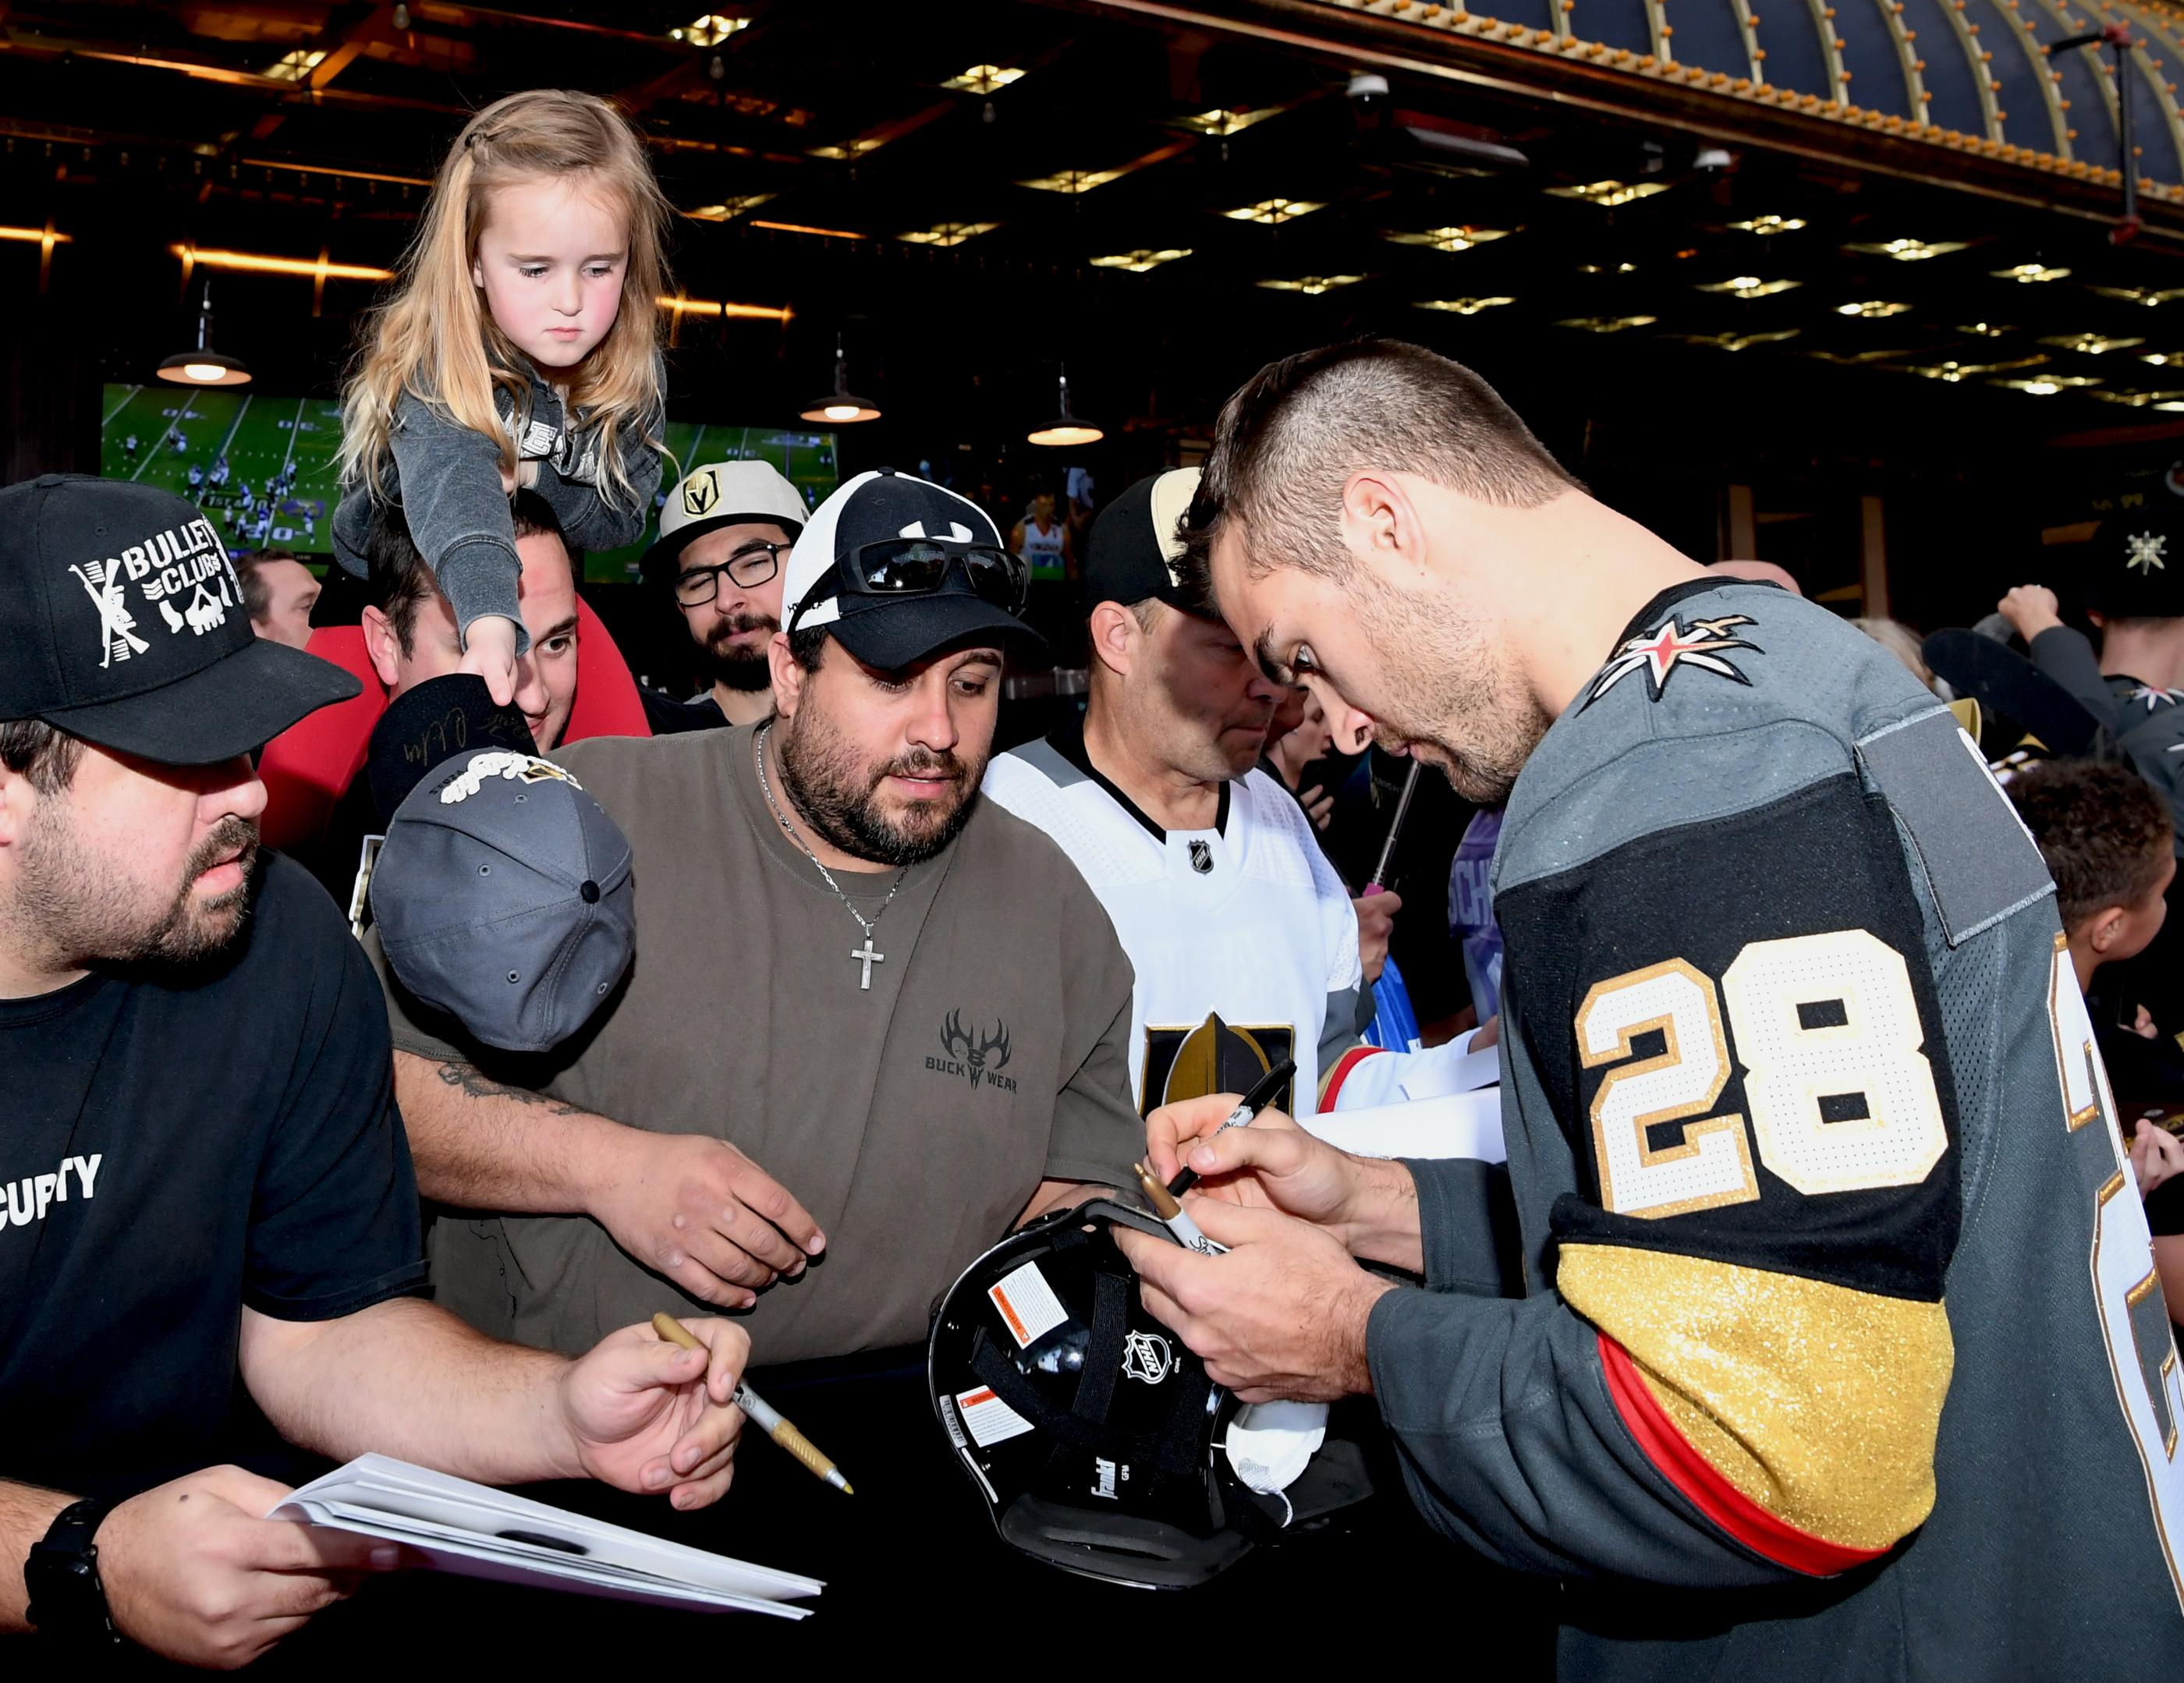 The Golden Knights host a Fan Fest with the D Las Vegas and Fremont Street Experience. A young fan reaches down to get an autograph fromLas Vegas Golden Knights player William Carrier at Fremont Street Experience. Sunday, January 14, 2017. CREDIT: Glenn Pinkerton/Las Vegas News Bureau